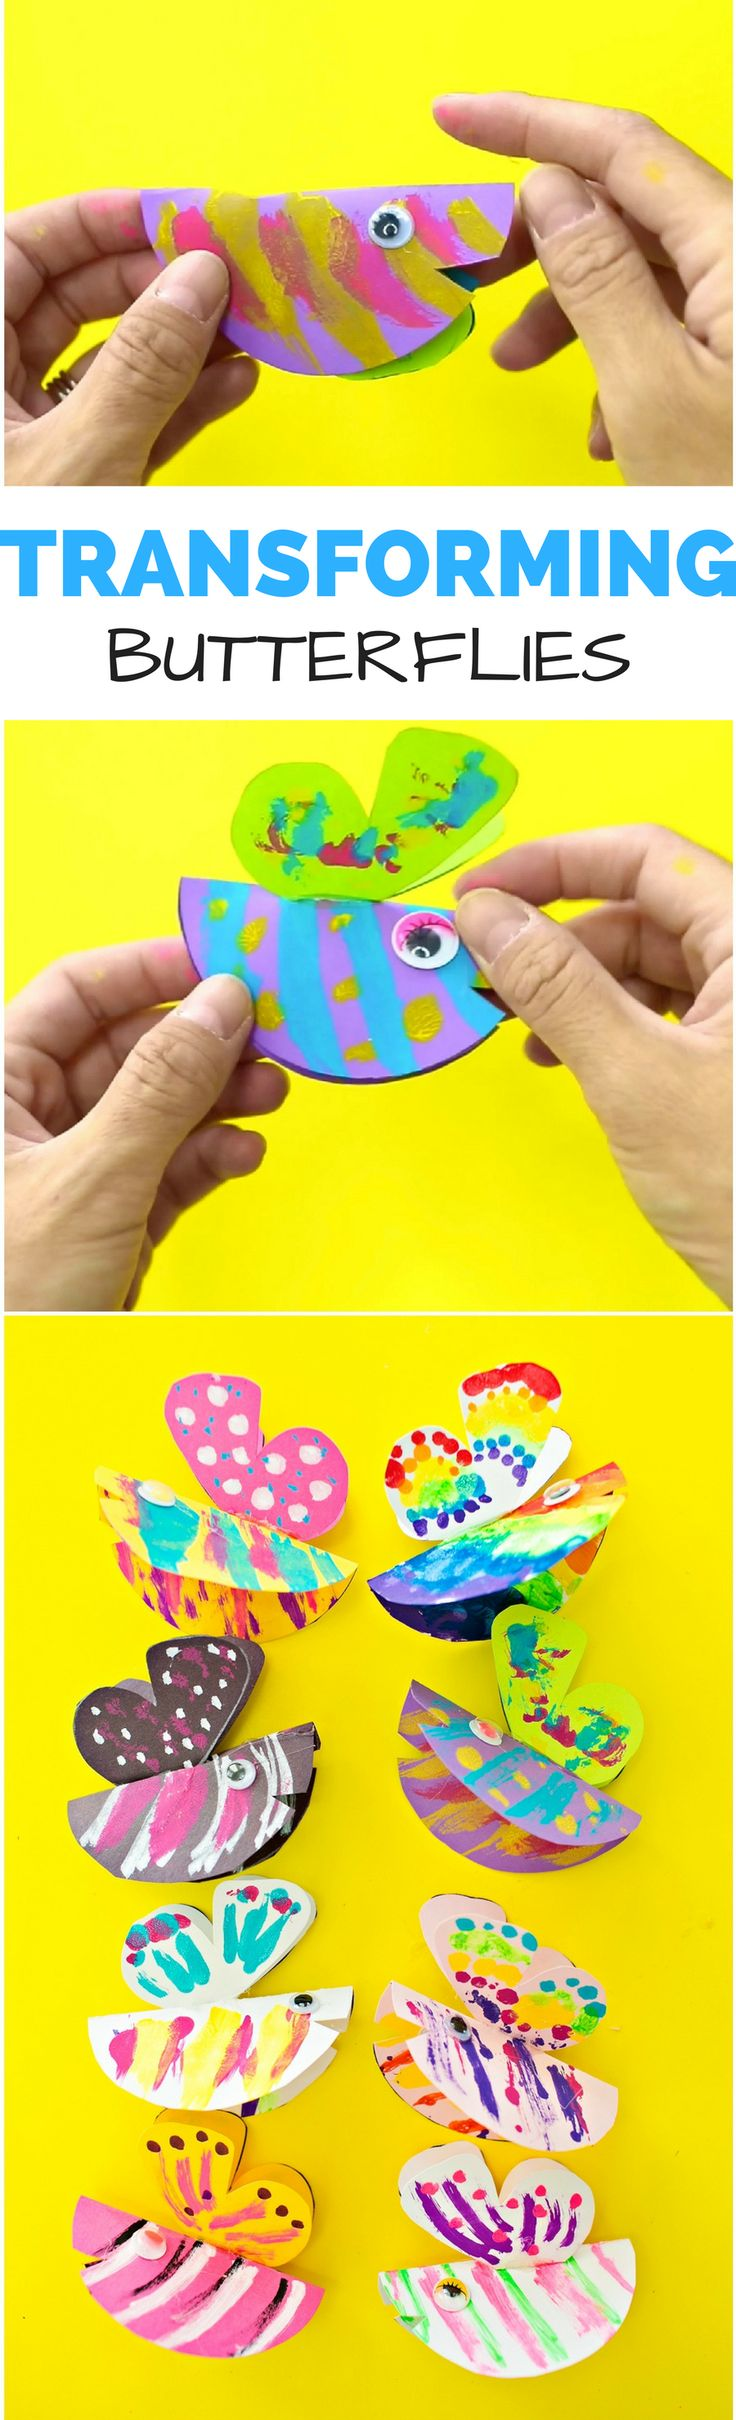 Transforming Paper Butterfly Craft. Kids will love painting symmetrical patterns to make cute caterpillars turn into pretty butterflies. Free template included.